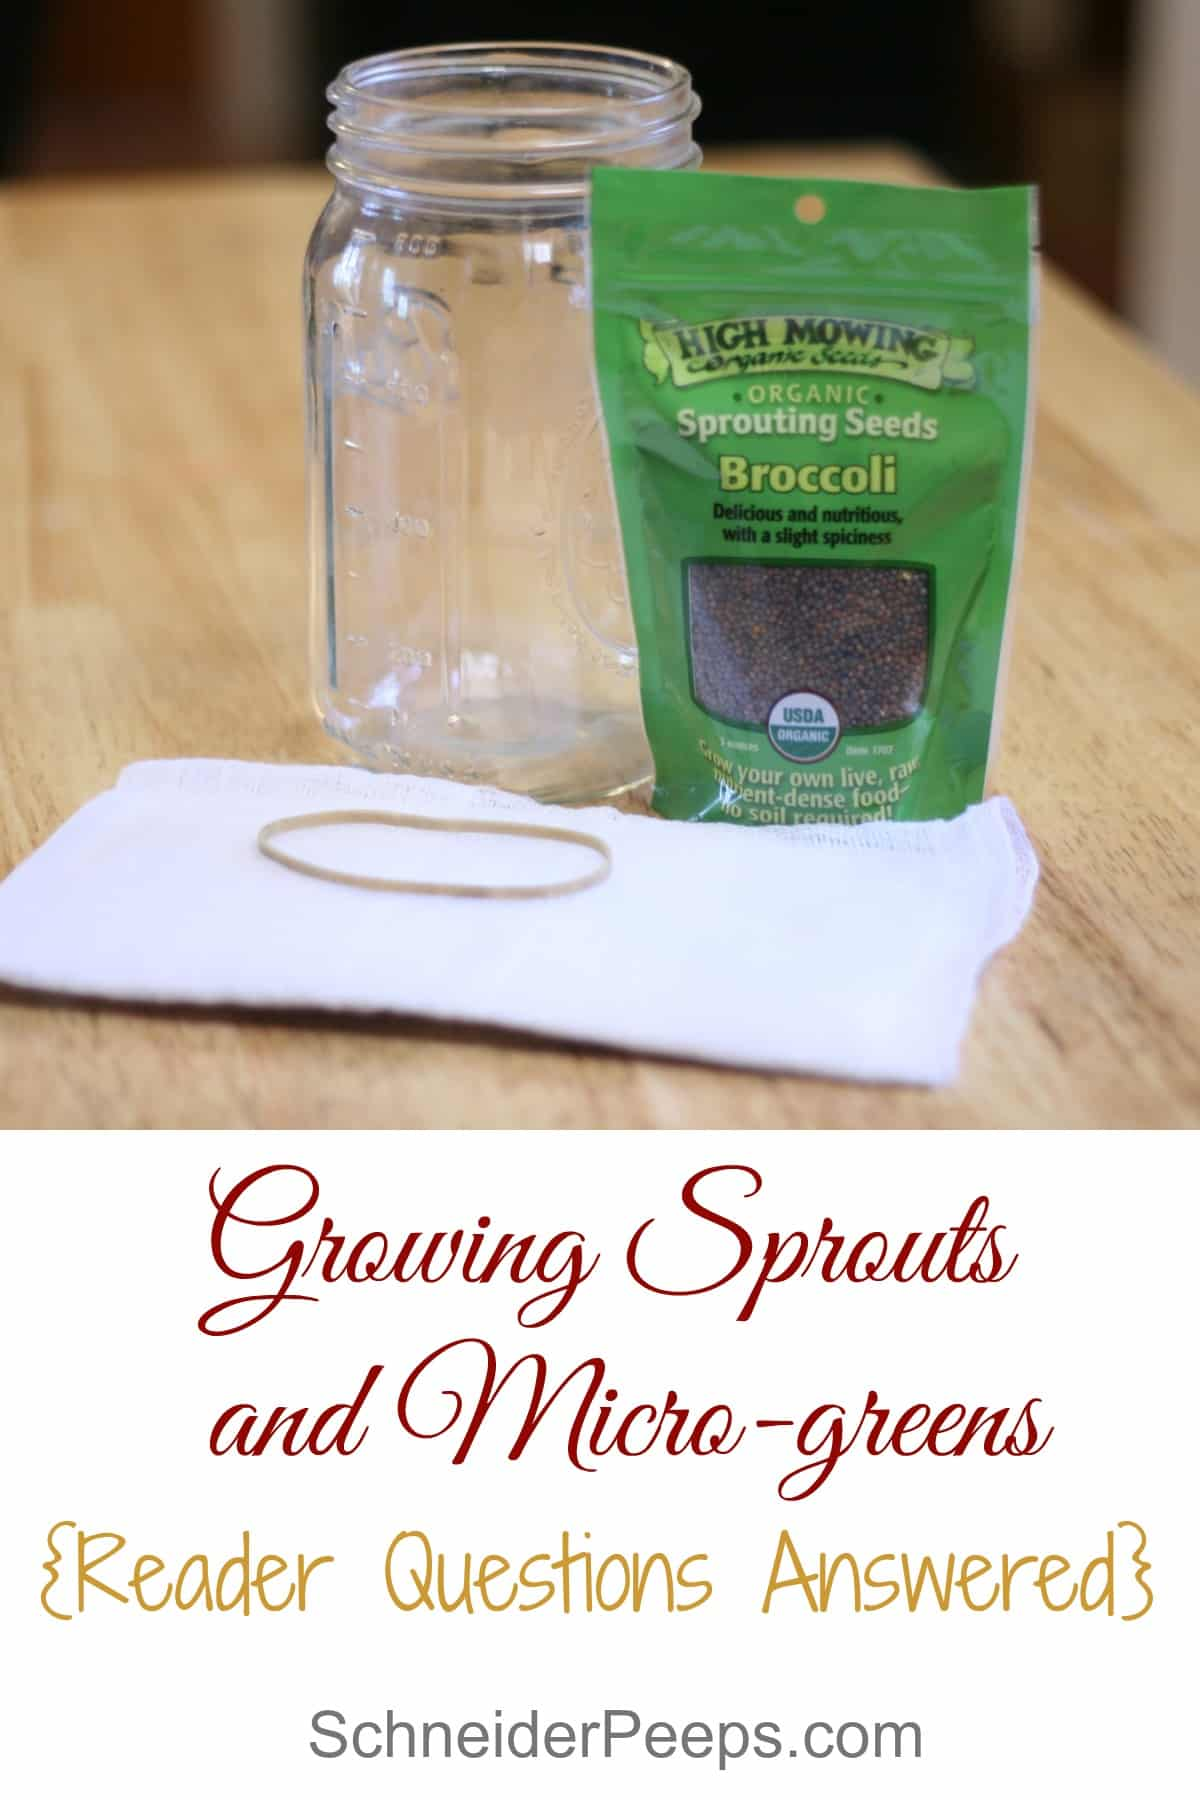 SchneiderPeeps - Growing sprouts and microgreens at home is a great way to get fresh greens all year long. In this article we answer our reader's most popular questions.